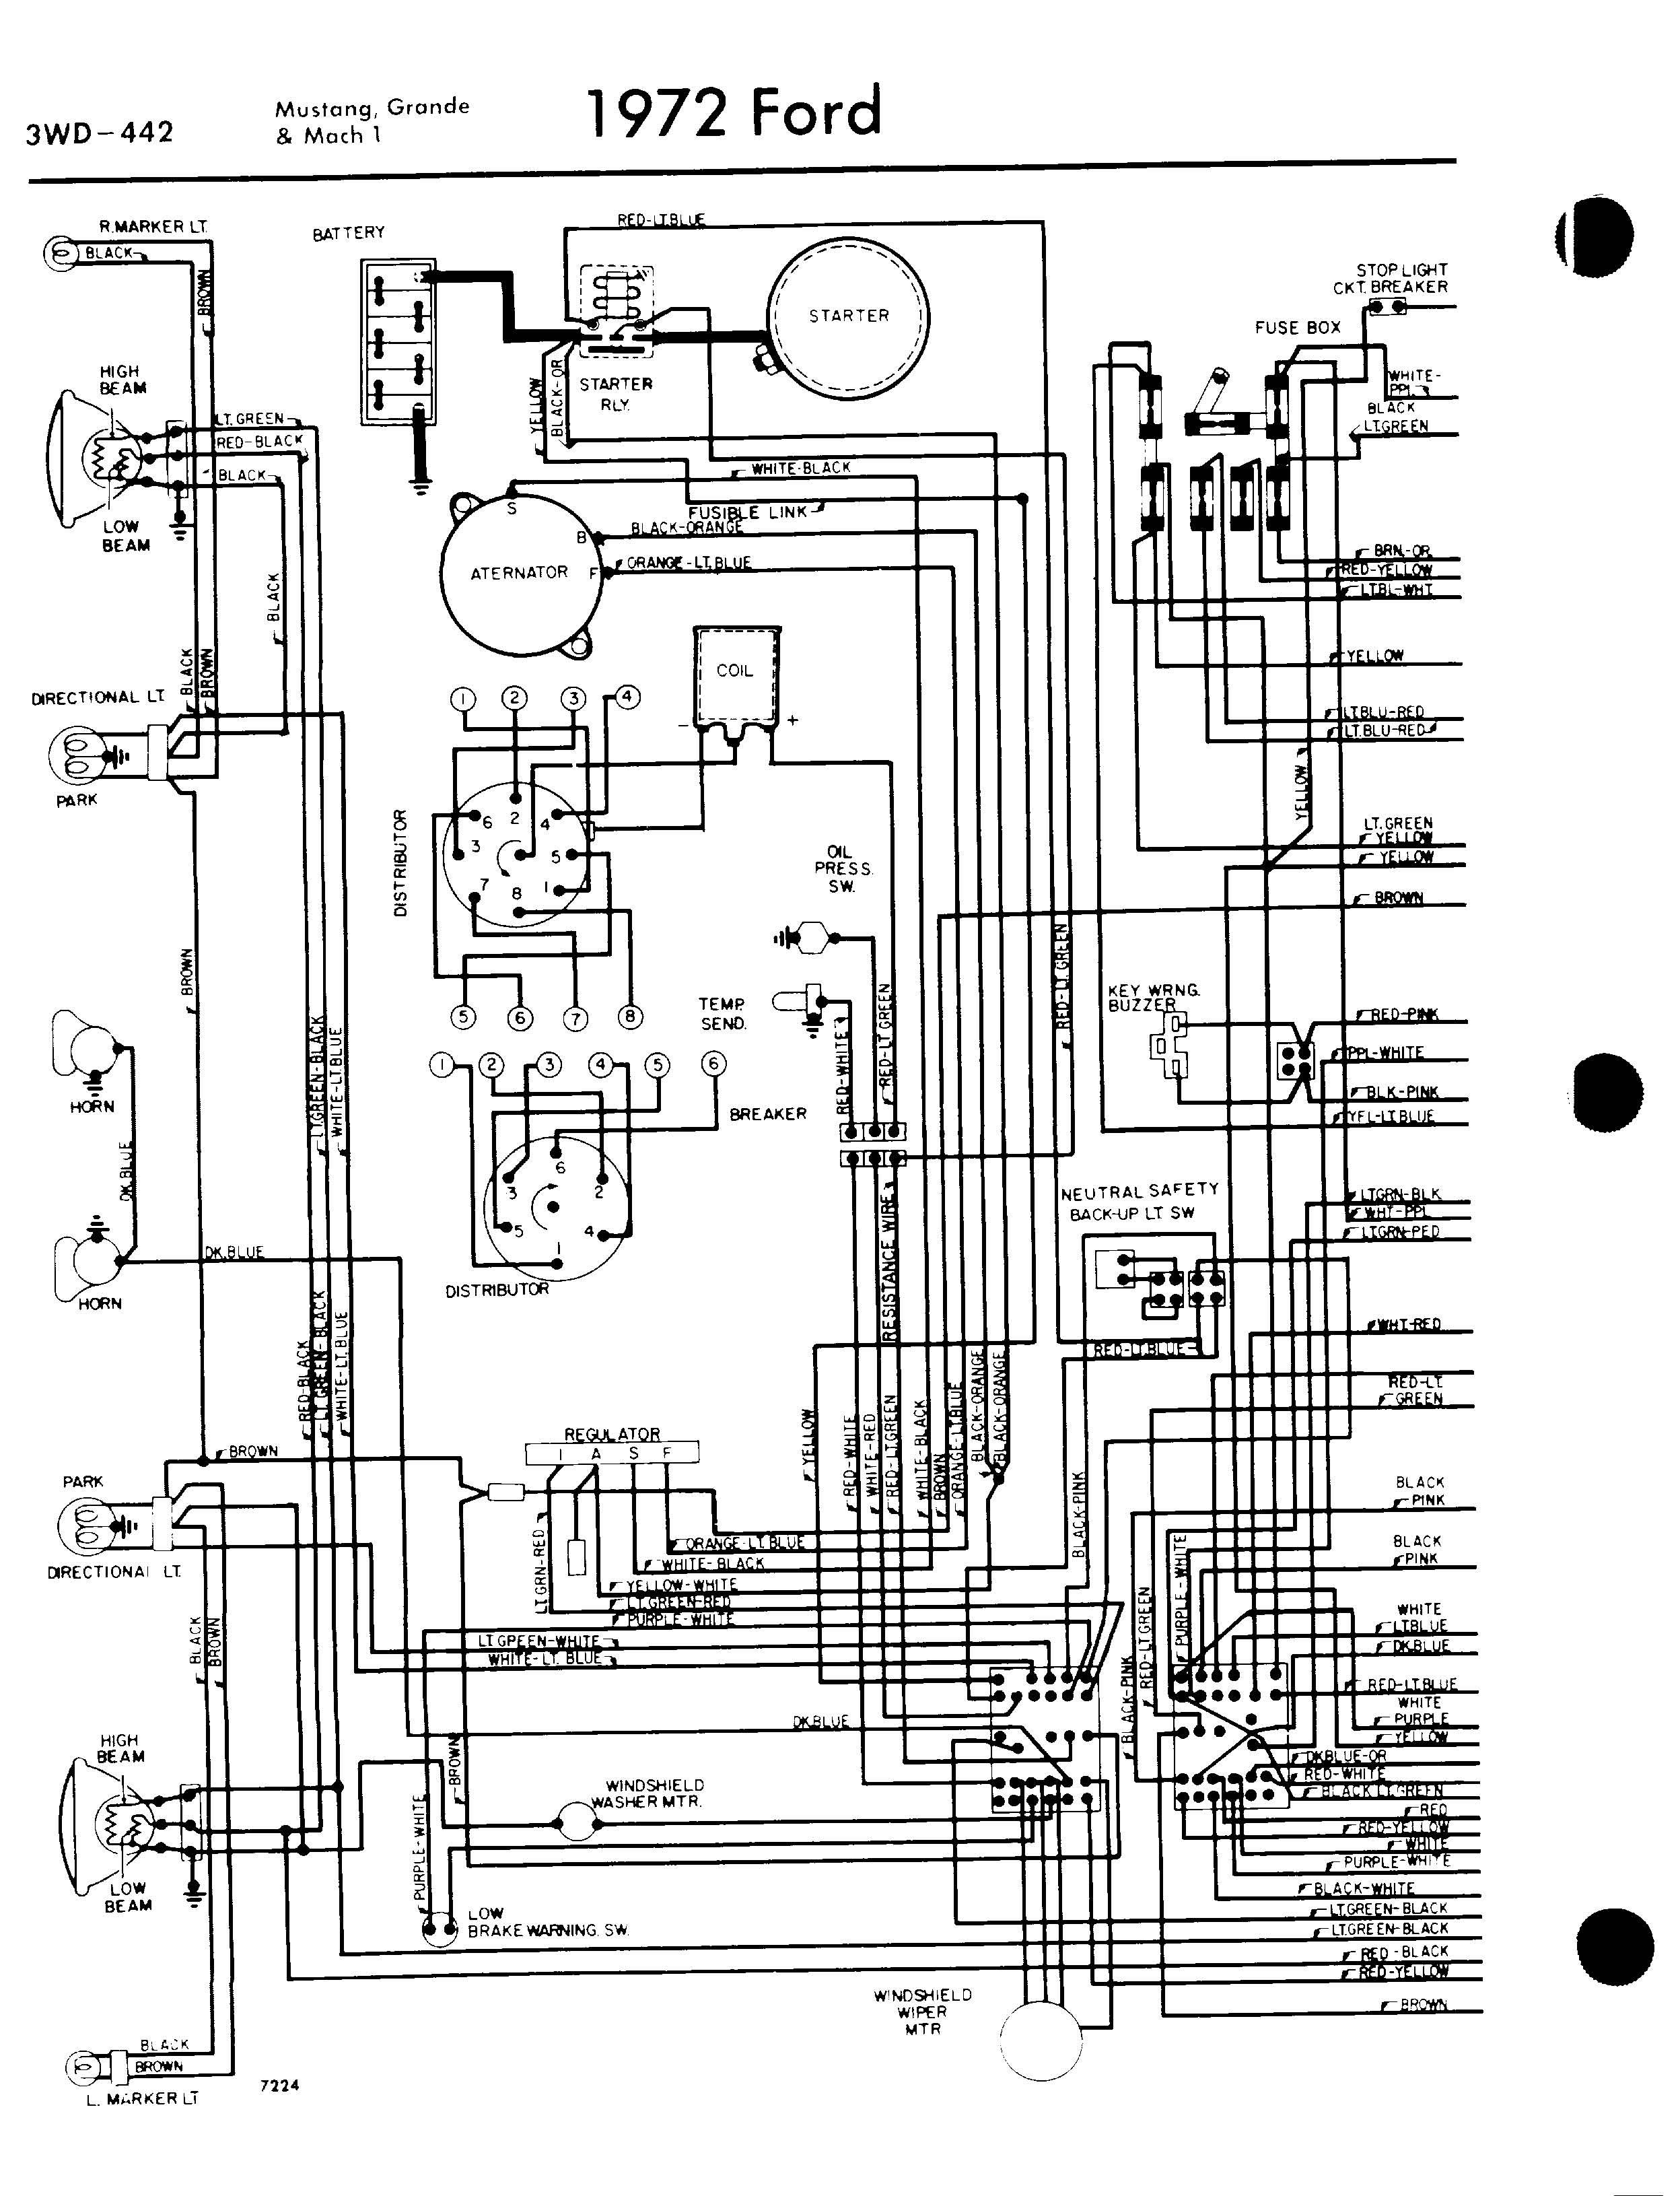 71af7a58e095e6a7716b32f1b23e8bd2 72 mach1 alternator wire harness diagram yahoo search results fender mustang wiring harness at alyssarenee.co